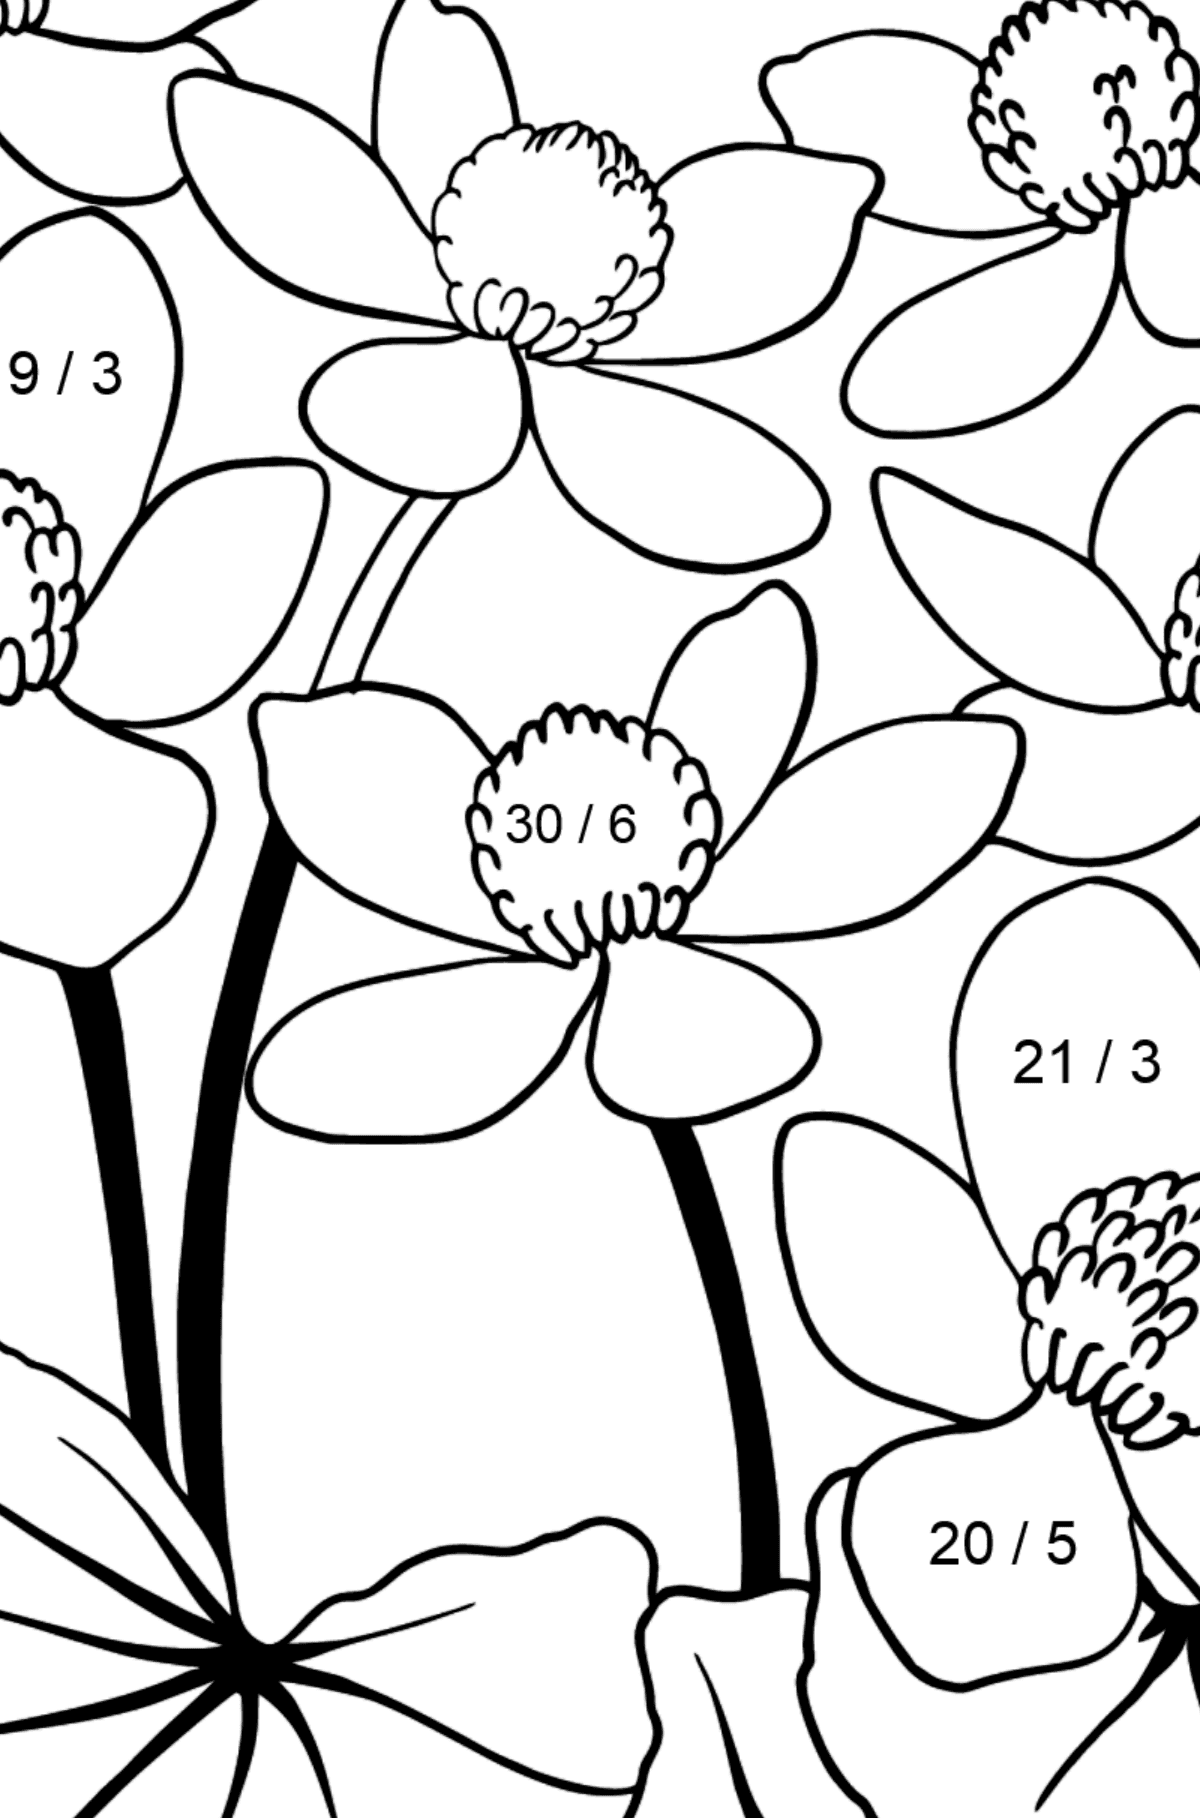 Flower Coloring Page - A Yellow and Red Marsh Marigold - Math Coloring - Division for Kids